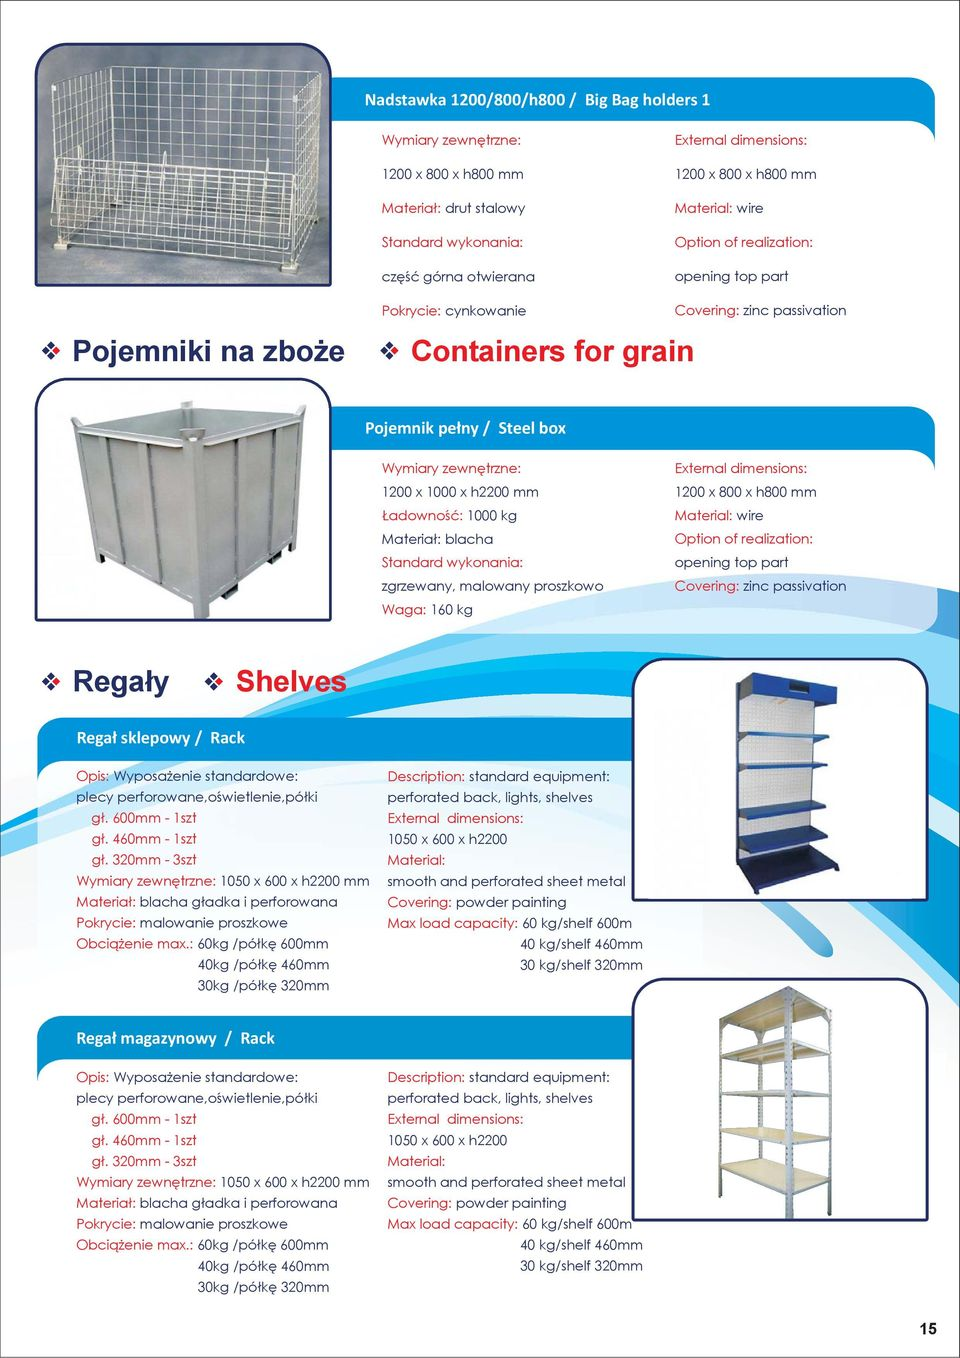 part Covering: zinc passivation Regały Shelves Regał sklepowy / Rack Opis: Wyposażenie standardowe: plecy perforowane,oświetlenie,półki gł. 600mm - 1szt gł. 460mm - 1szt gł.